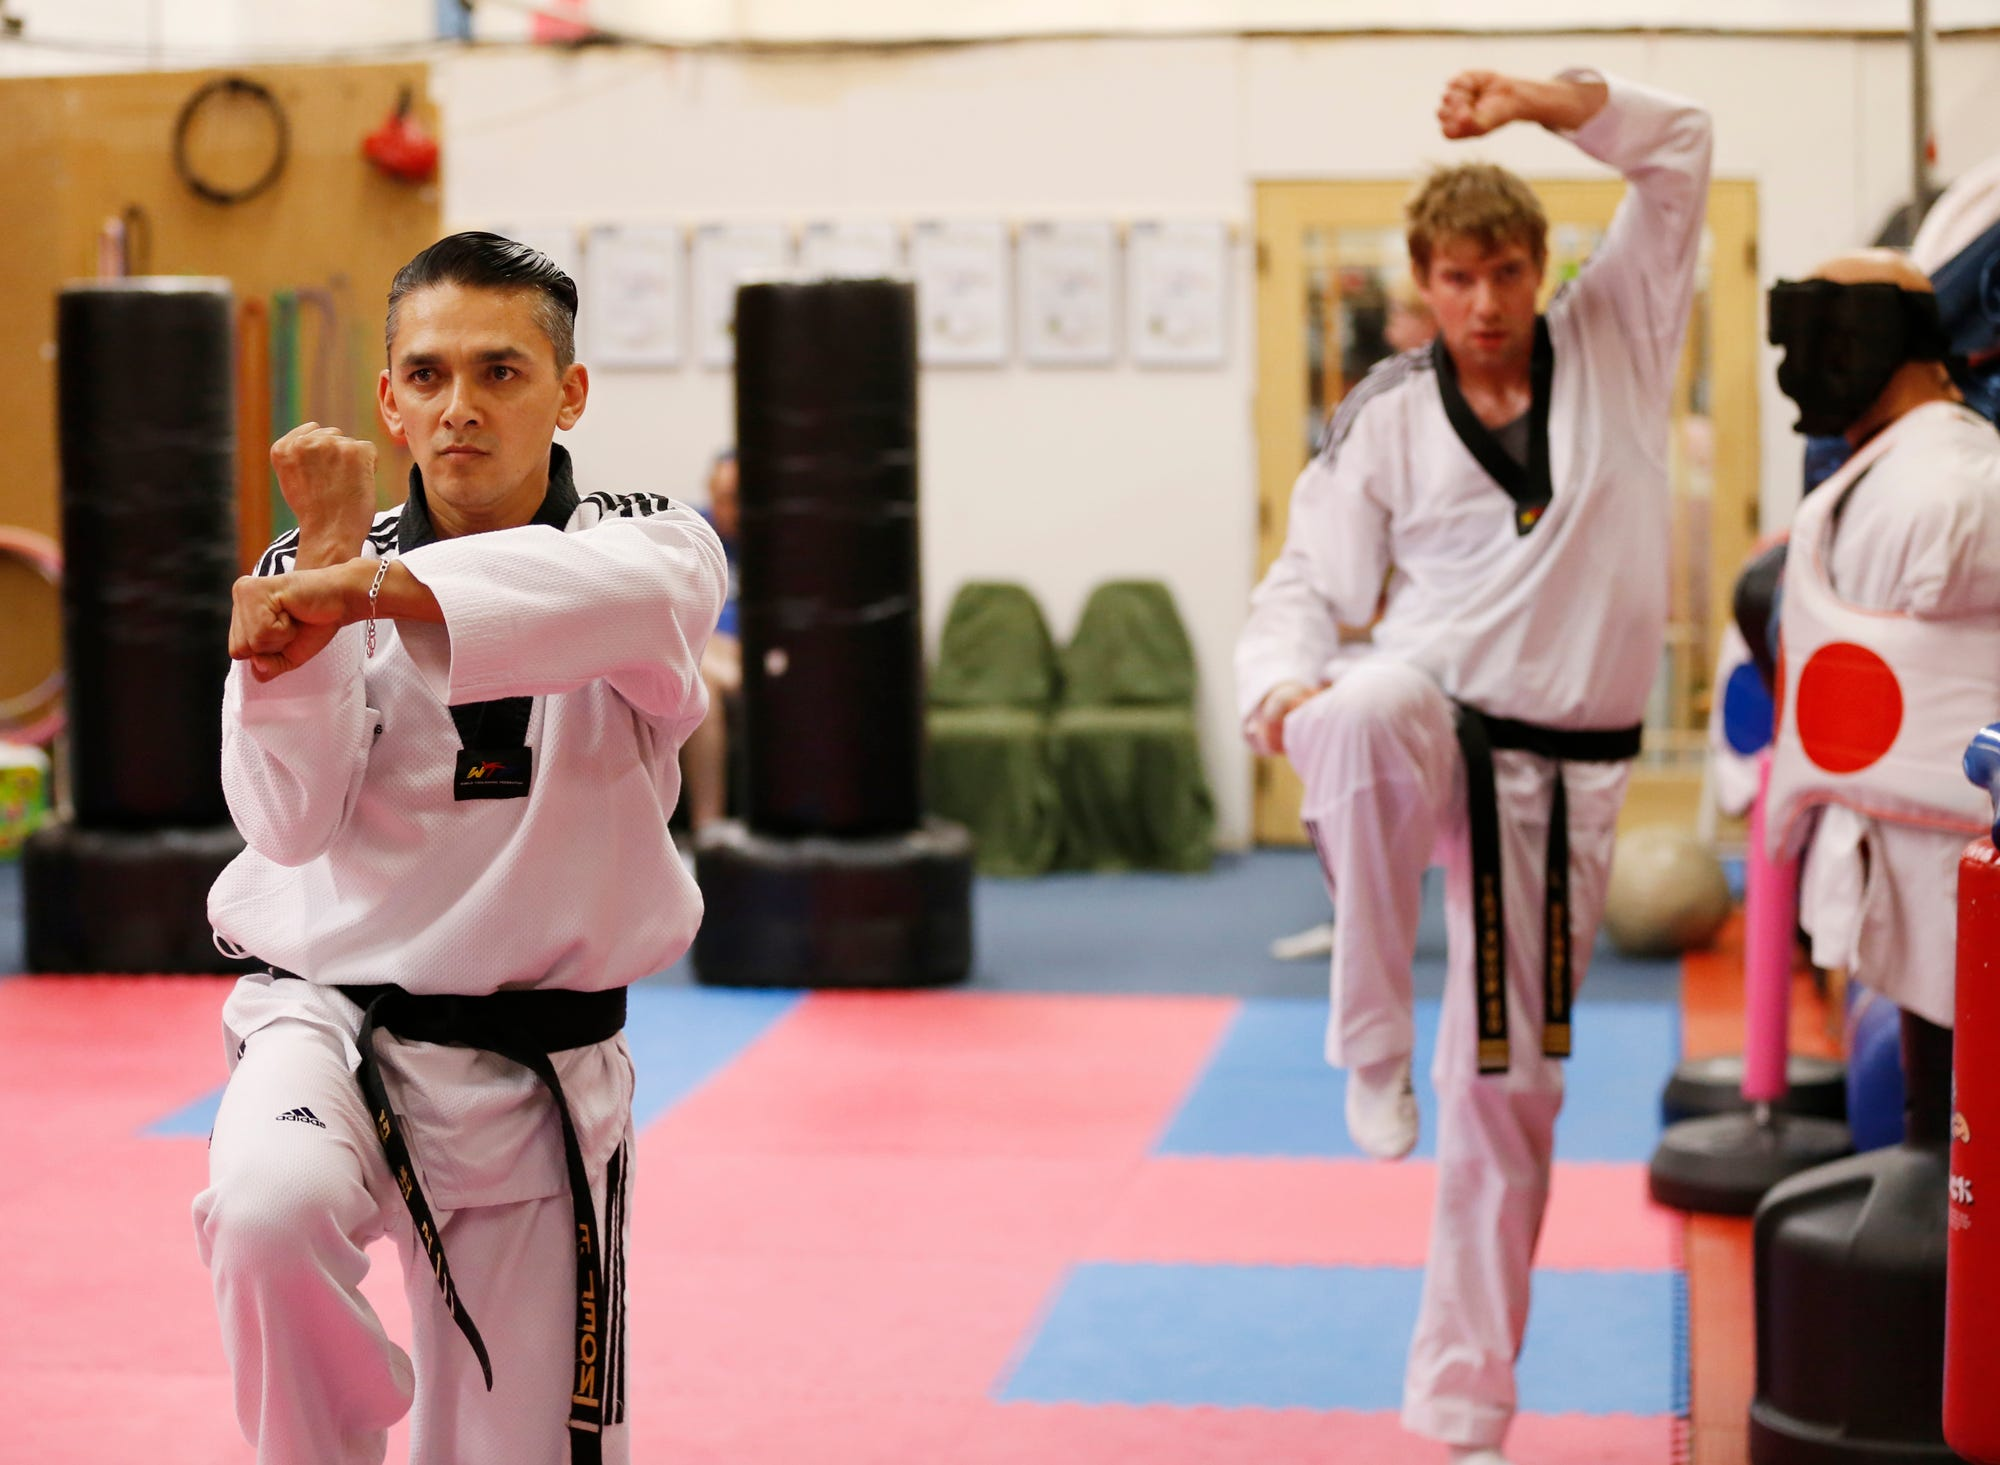 Felipe Leon, foreground, and Lucas Bennett demonstrate forms as they test for black belts in Taekwondo at American House of Martial Arts Tuesday, August 28, 2018, inside Trader Buck's Flea Market, 2330 Sagamore Parkway South in Lafayette. Forms are fighting techniques used as if fighting an opponent. Each form has a specific set of movements. Leon, 37, received his three Dan, or third degree, black belt. Bennett, 27, received his for Dan, or fourth degree black belt.